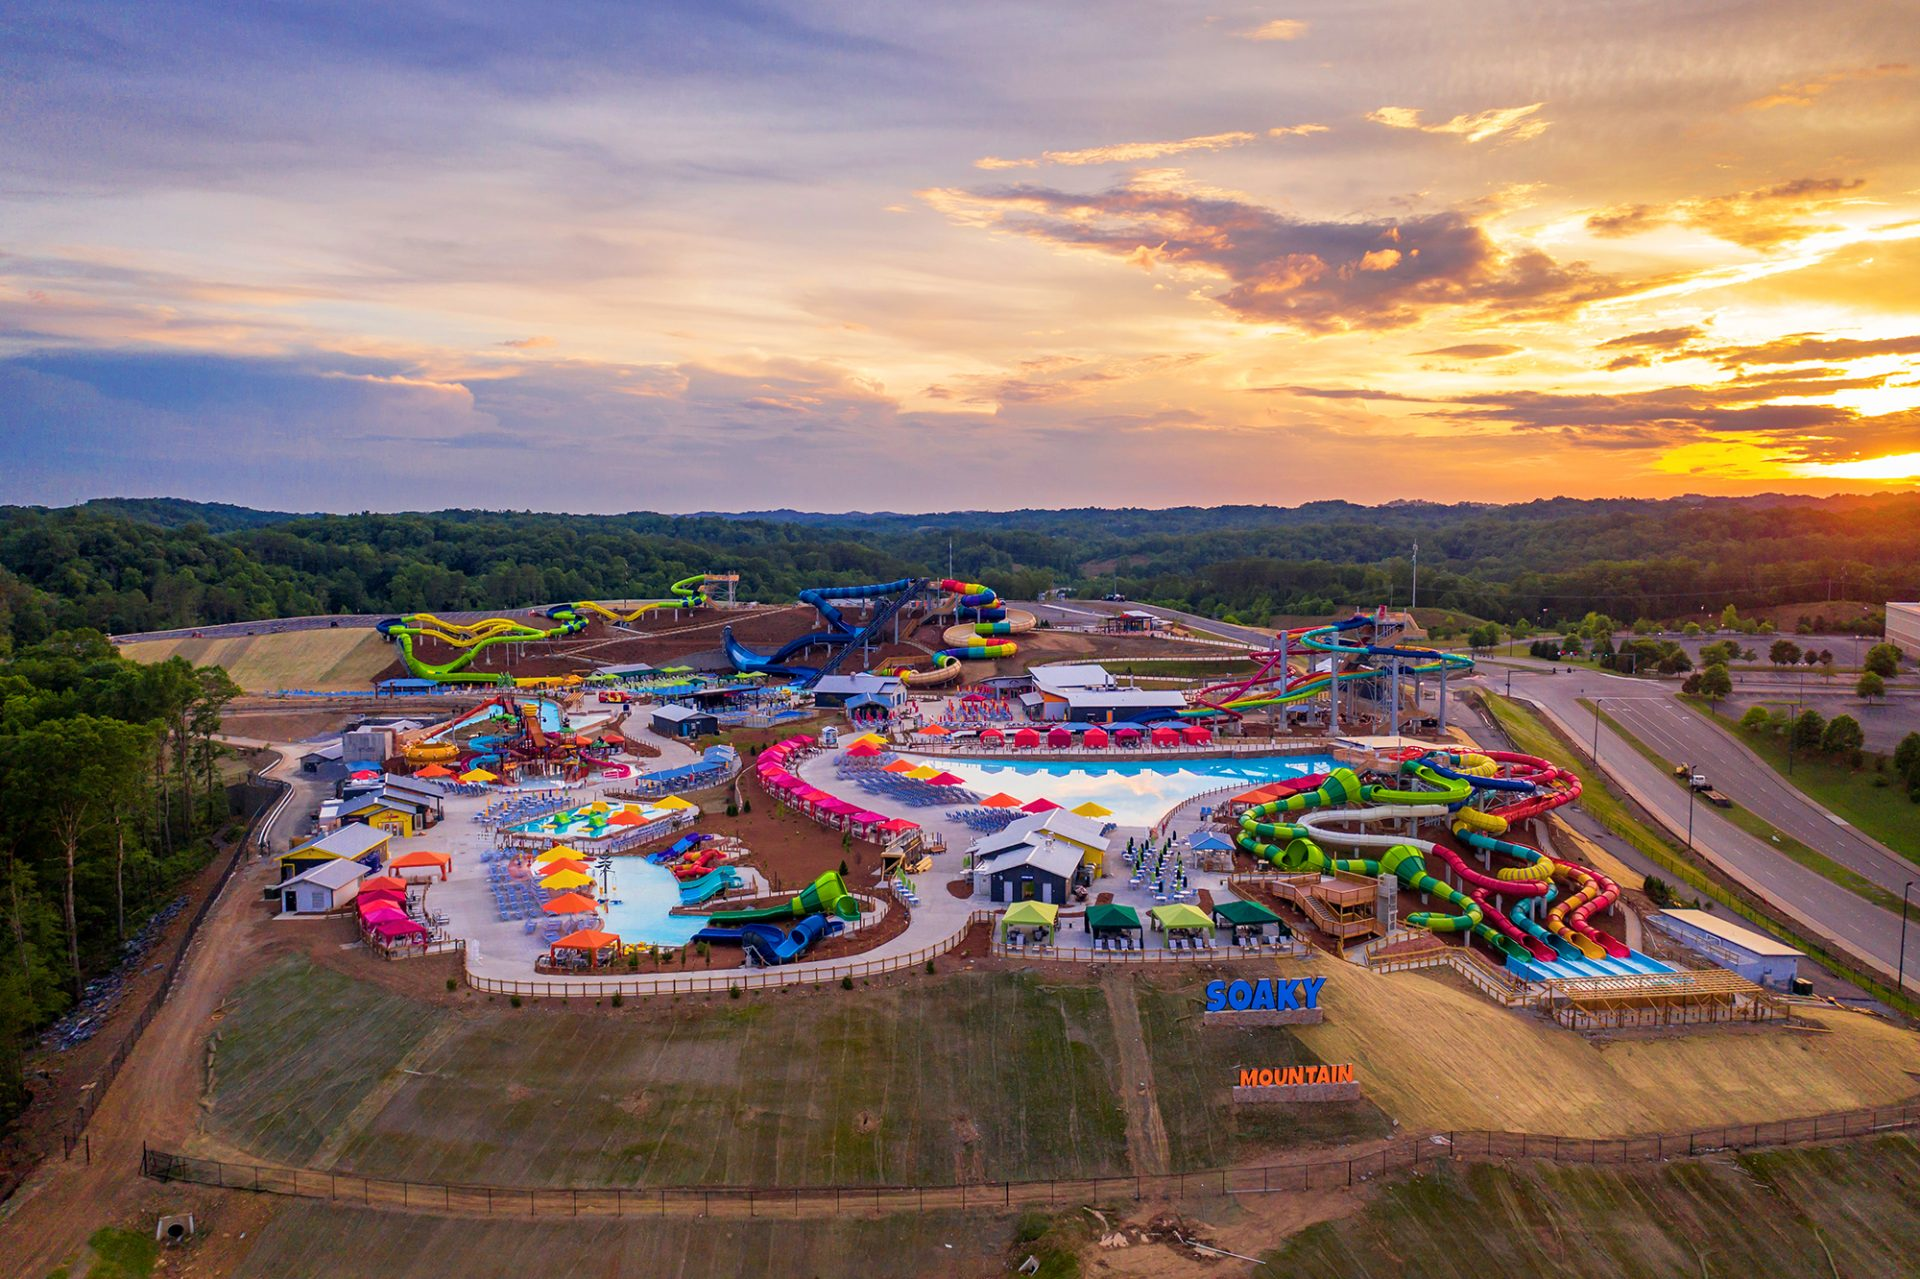 soaky mountain water park overview sunset